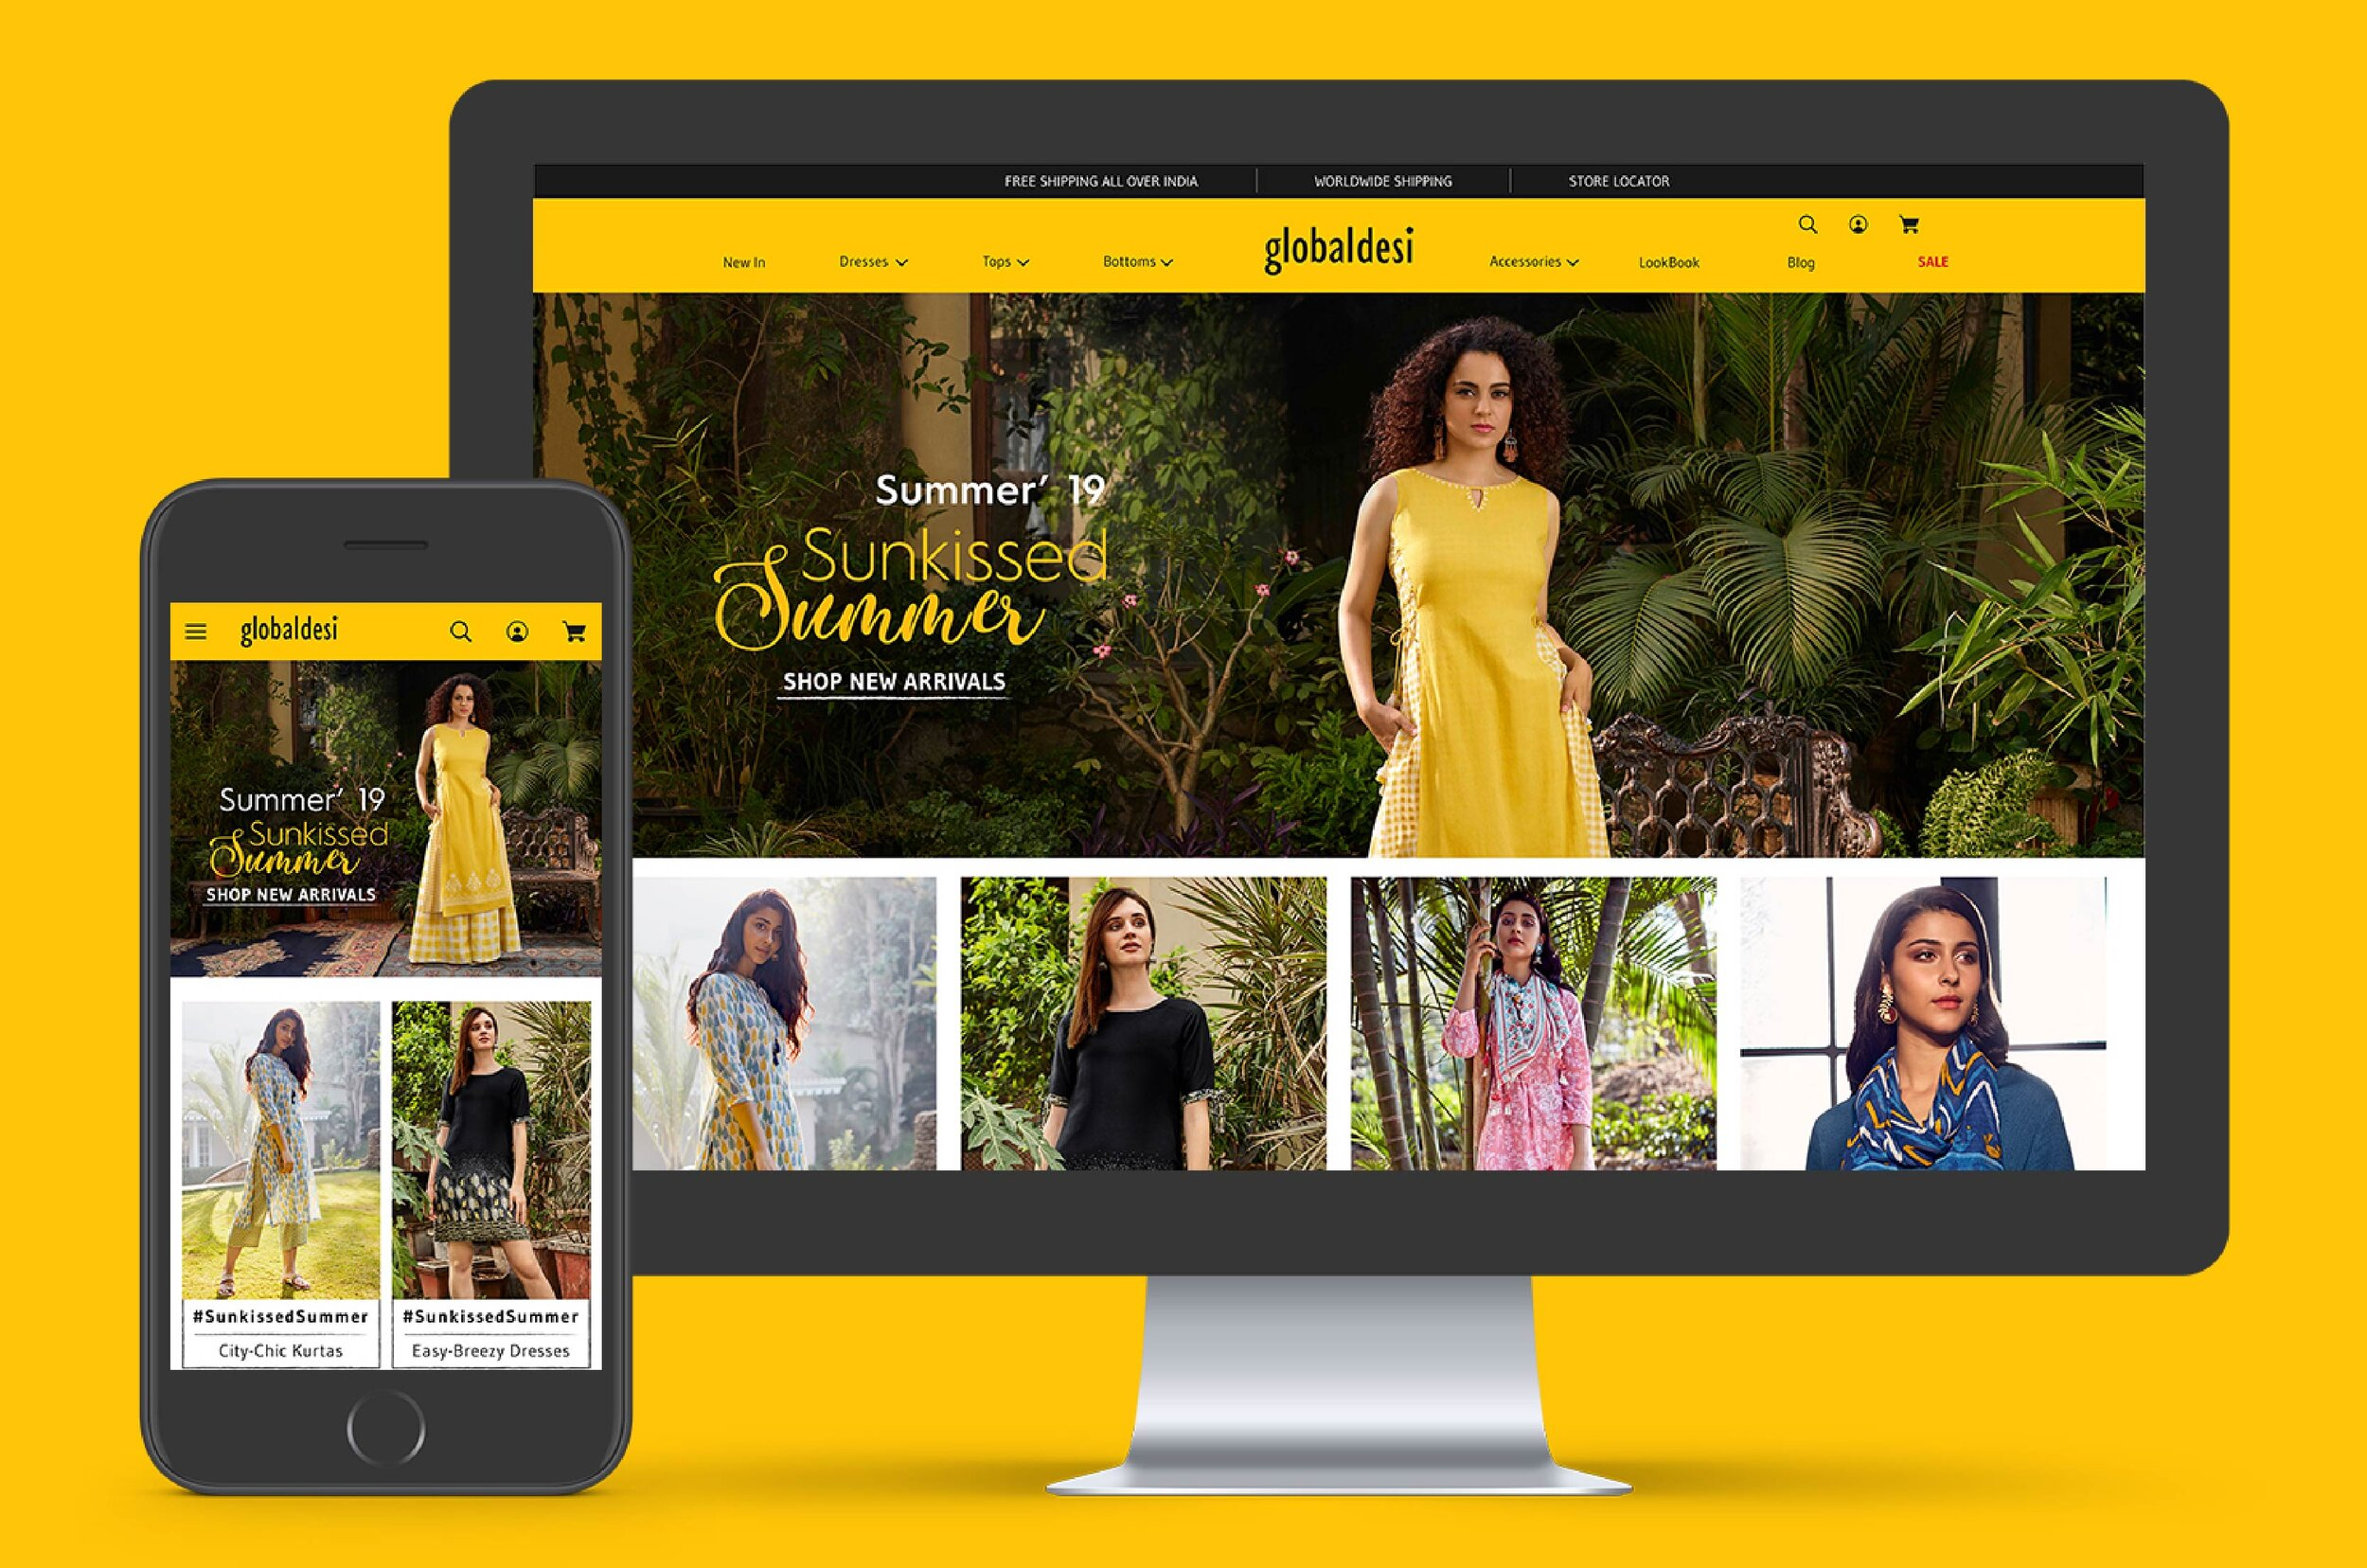 ONLINE SHOPPING EXPERIENCE FOR FREE-SPIRITED WOMEN